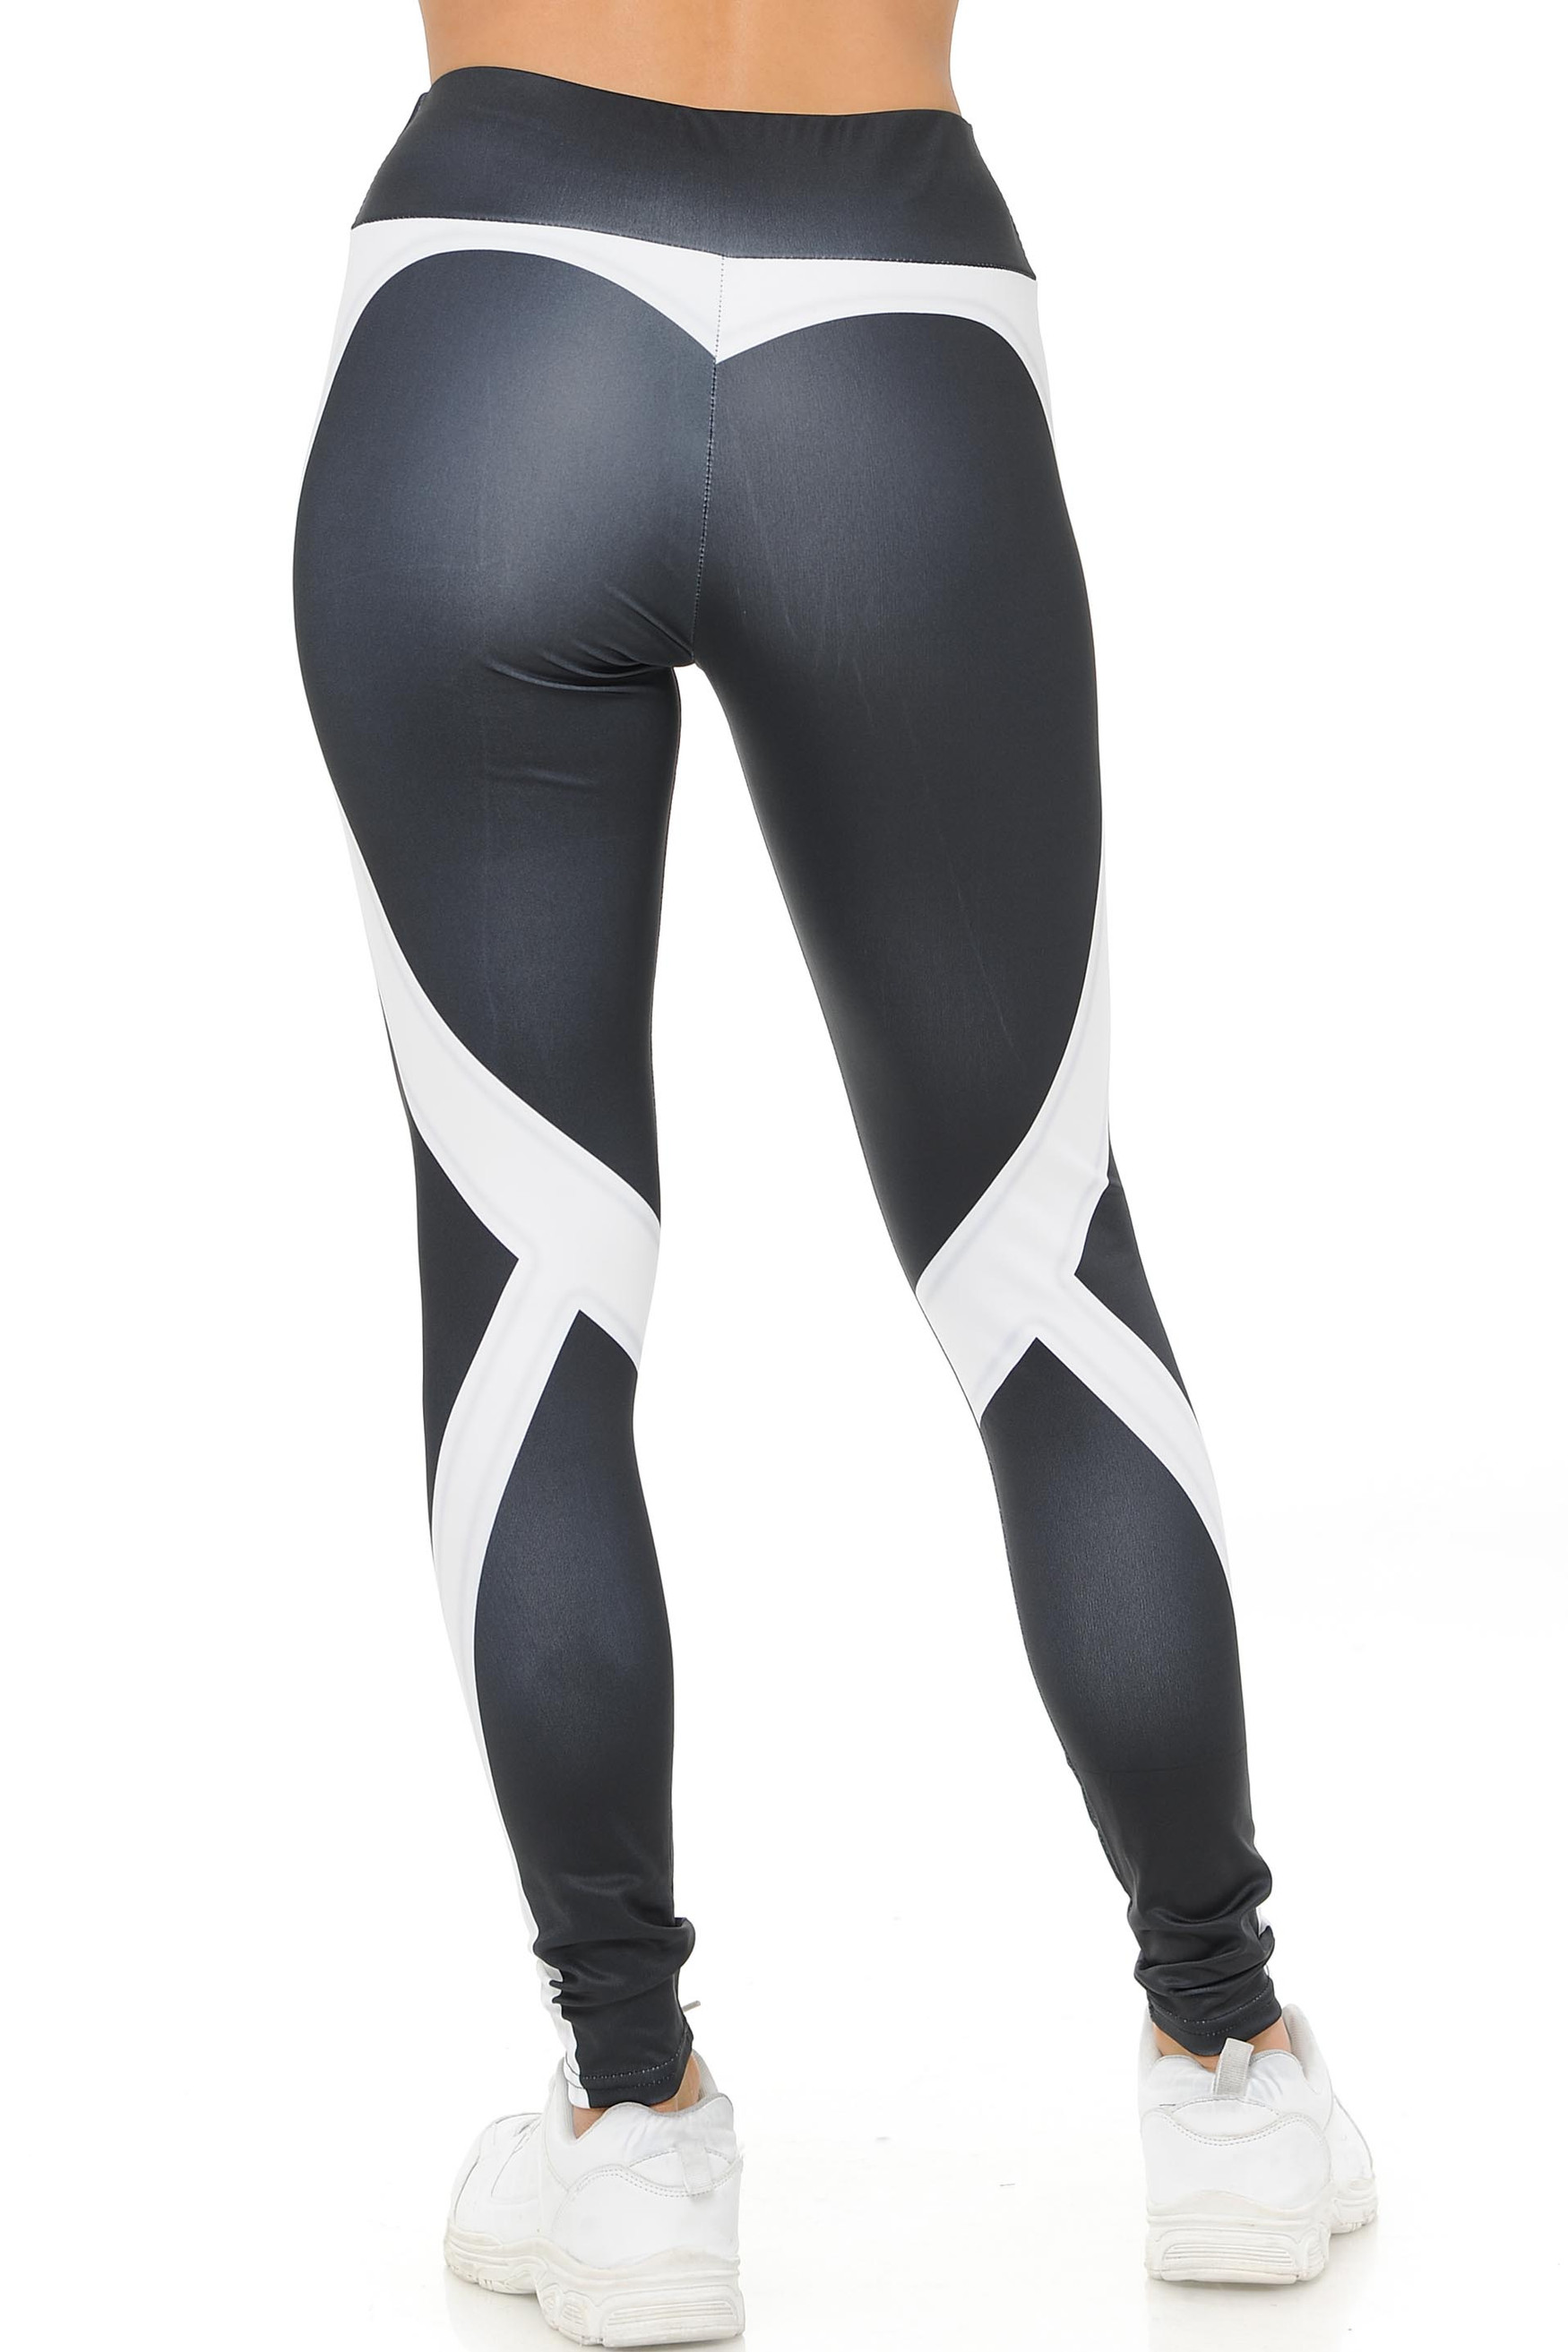 White Contouring Banded Heart Workout Leggings